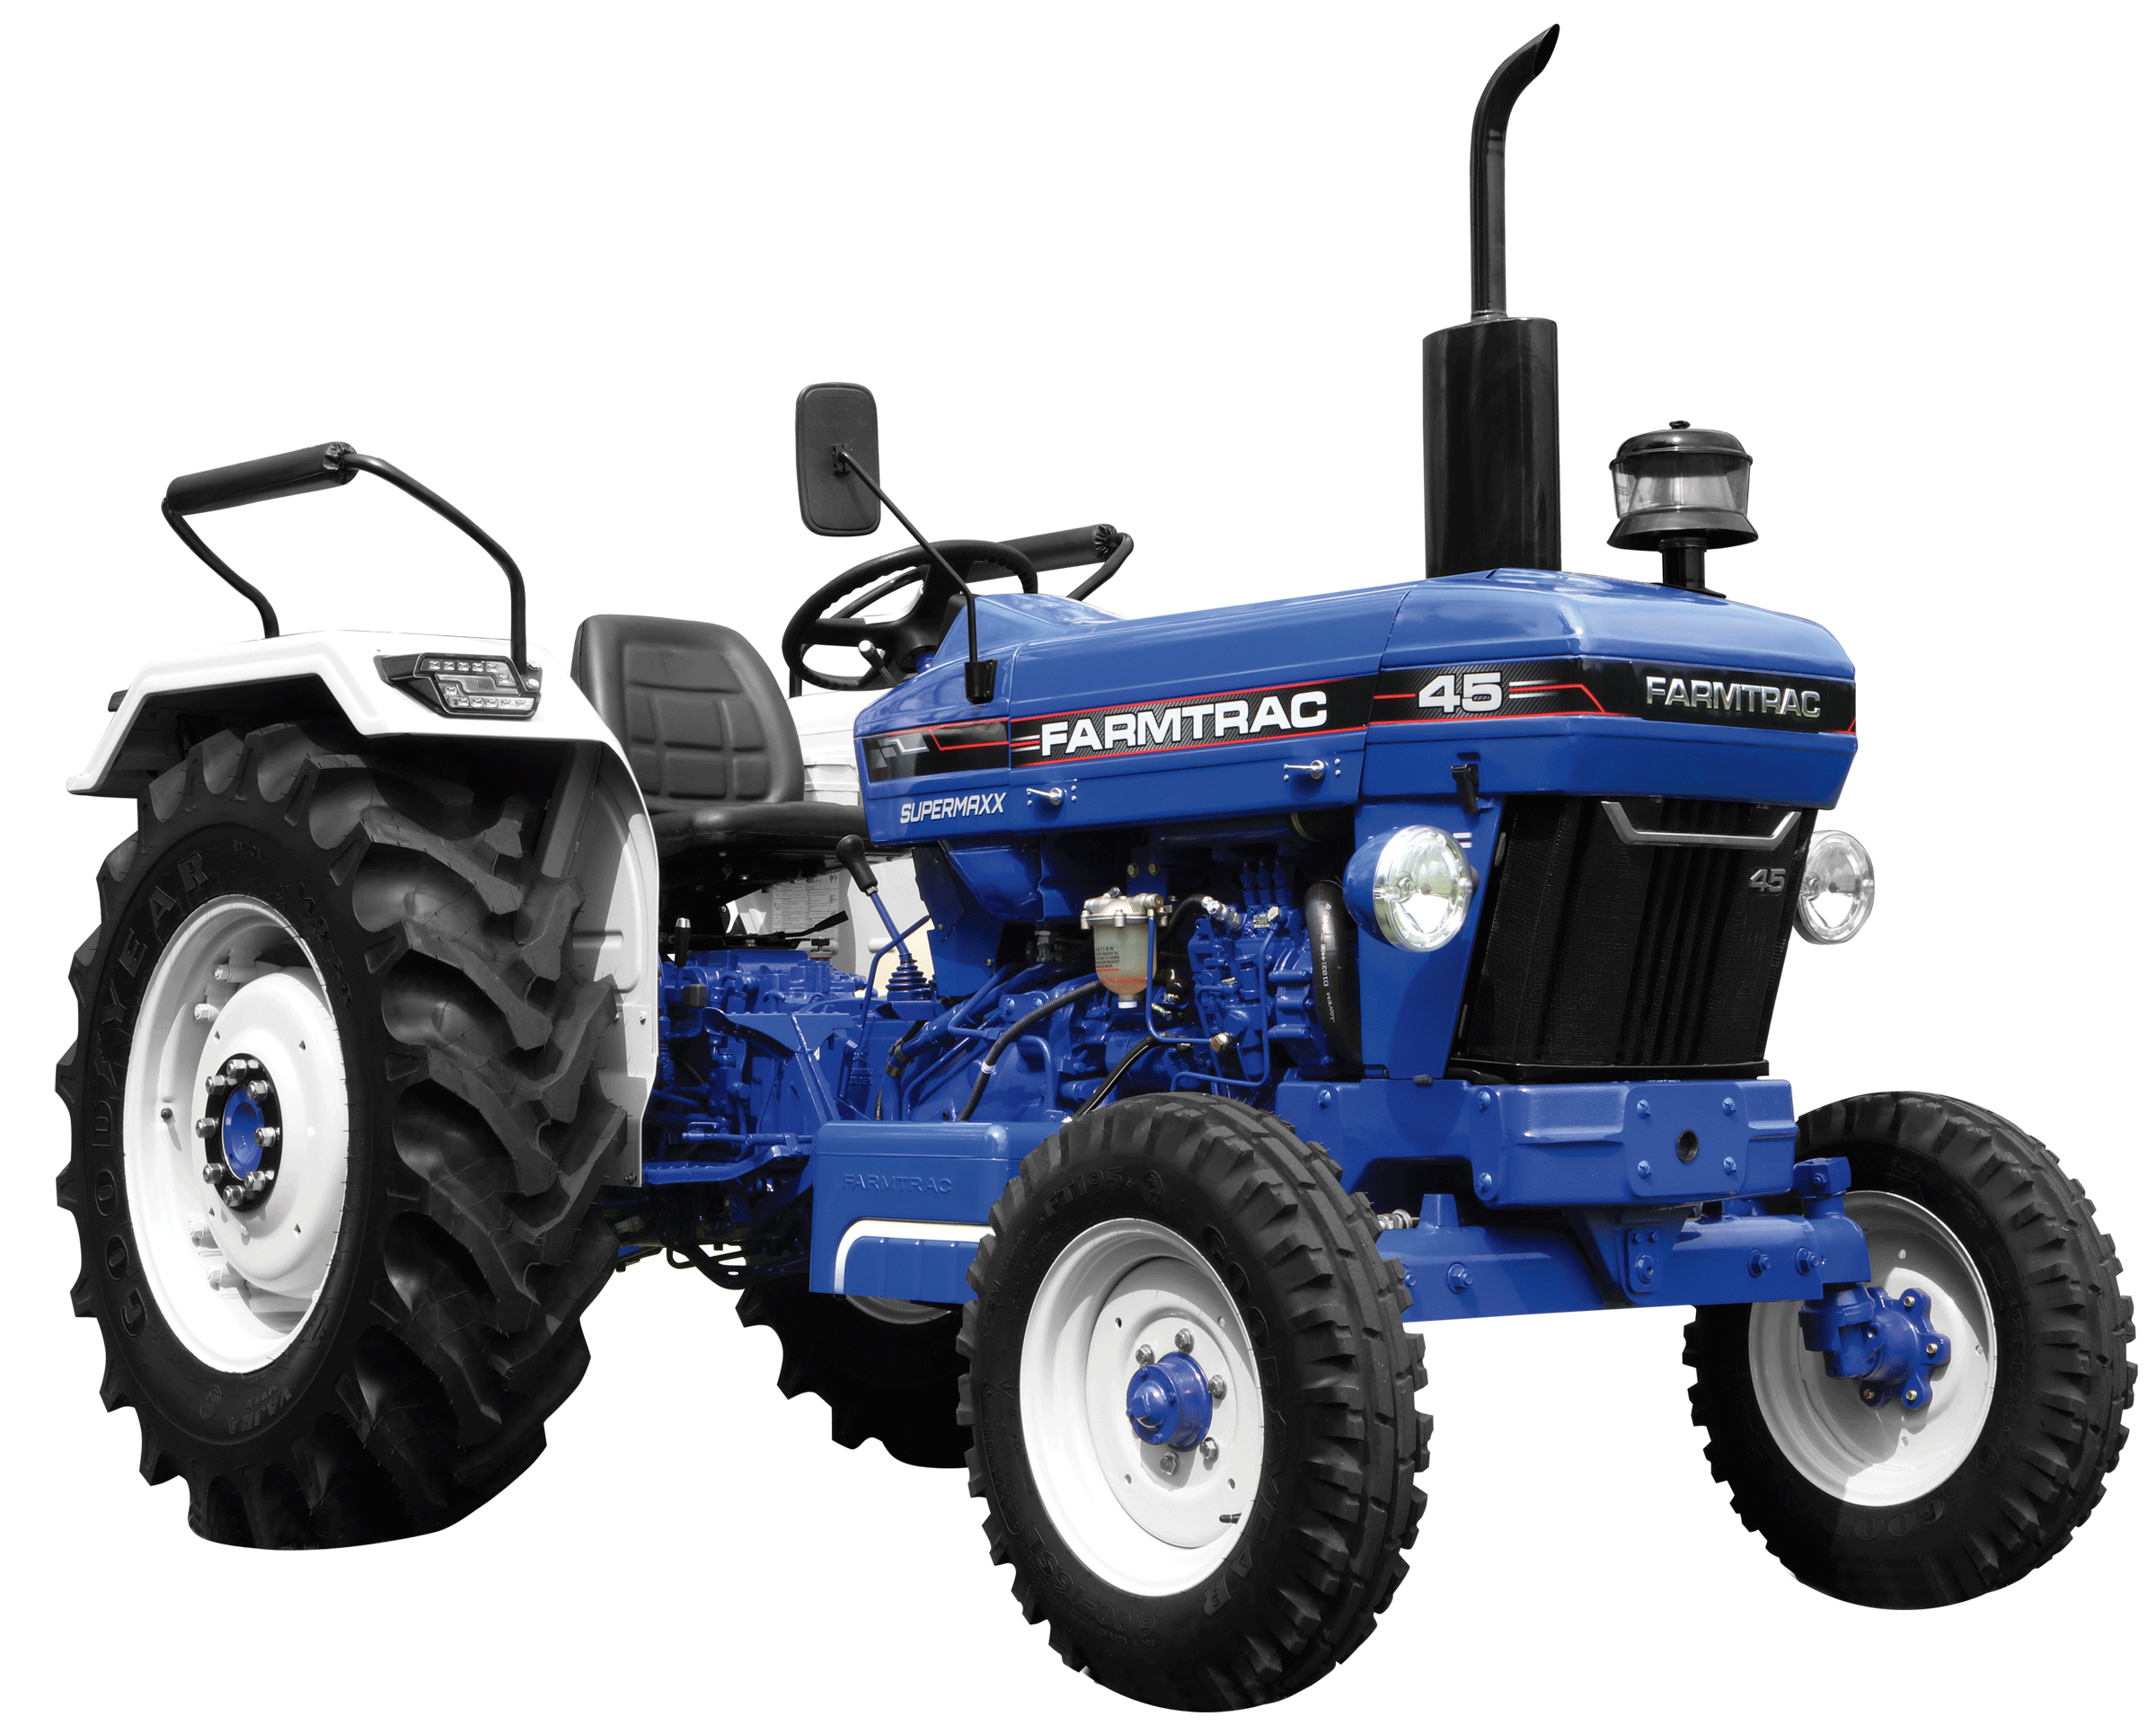 Farmtrac 45 Classic Tractor Onroad Price in India. Farmtrac 45 Classic Tractor features and Specification, Review Full Videos